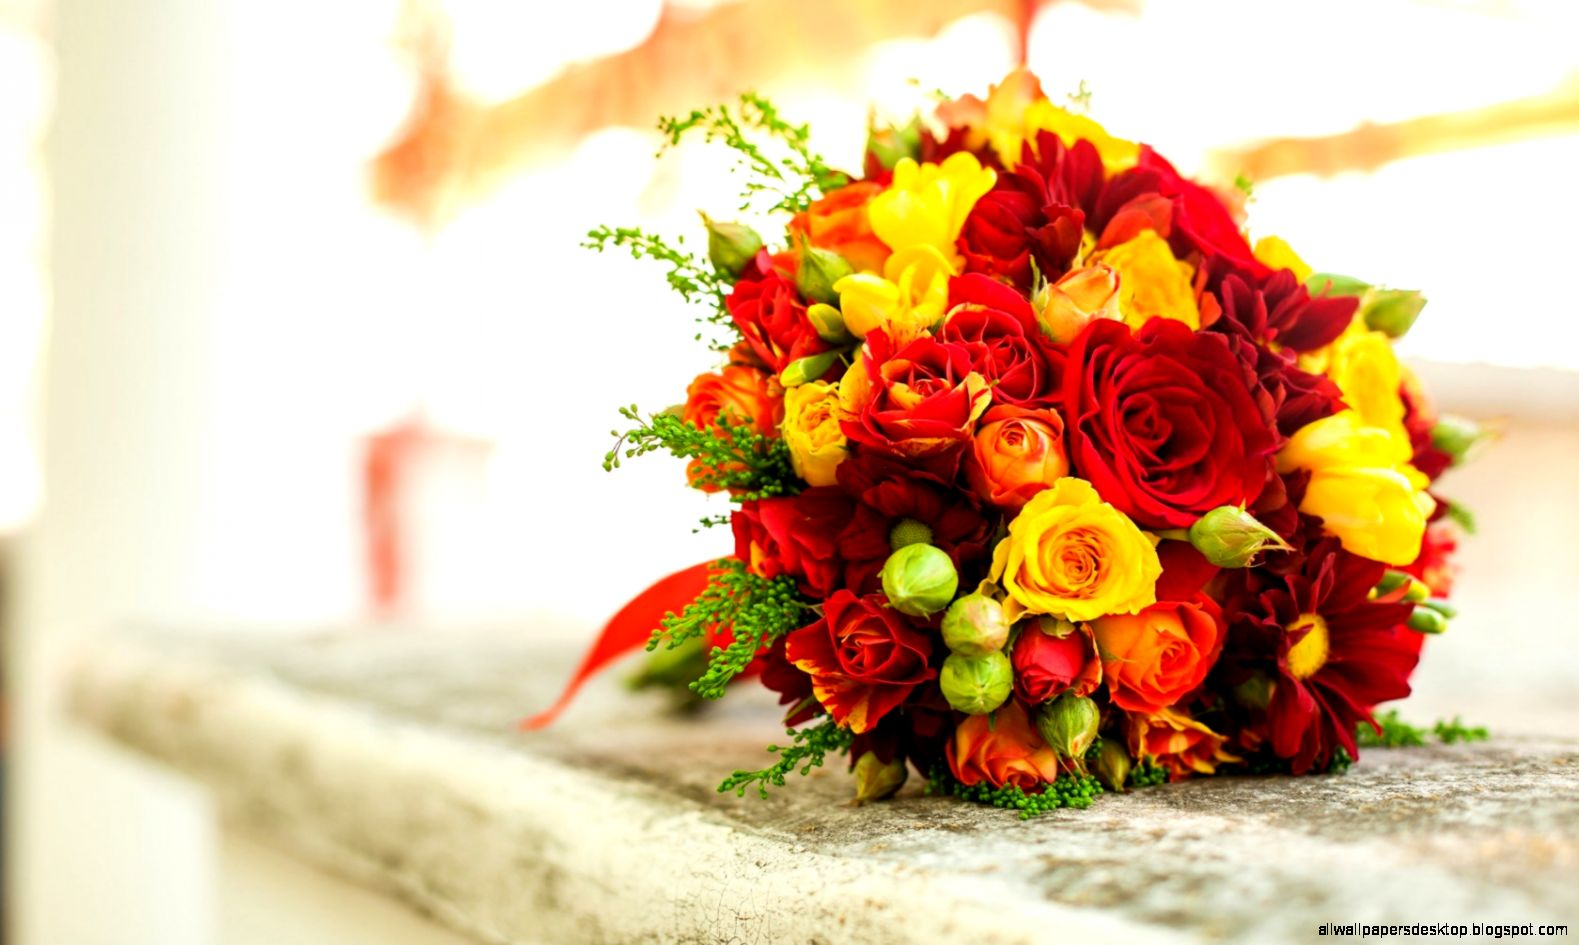 Flowers Roses Bouquet Hd Wallpaper All Wallpapers Desktop